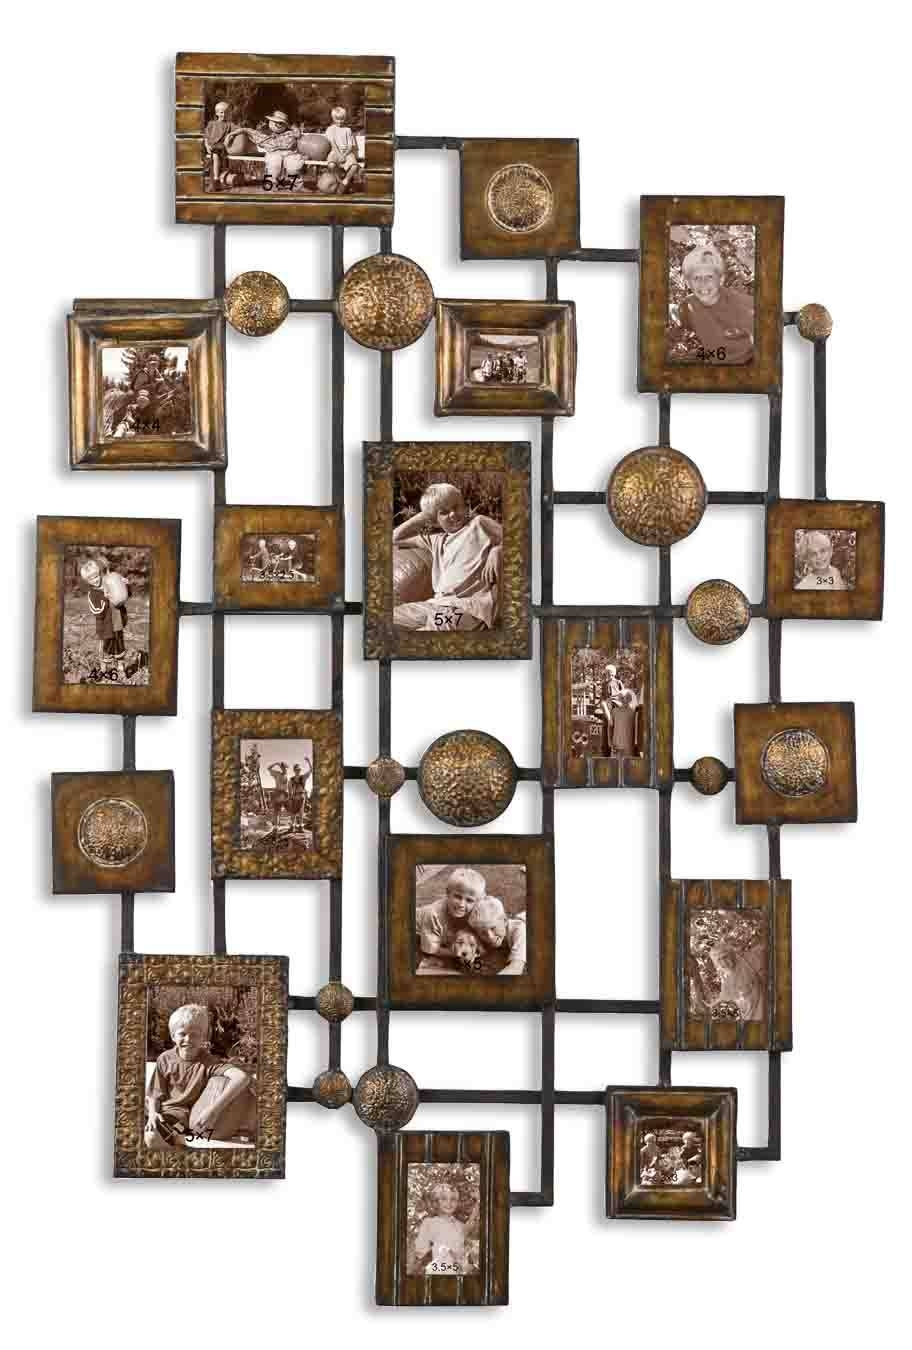 Uttermost Natane Decorative Metal Wall Art 13465 Within Current Uttermost Metal Wall Art (Gallery 7 of 20)